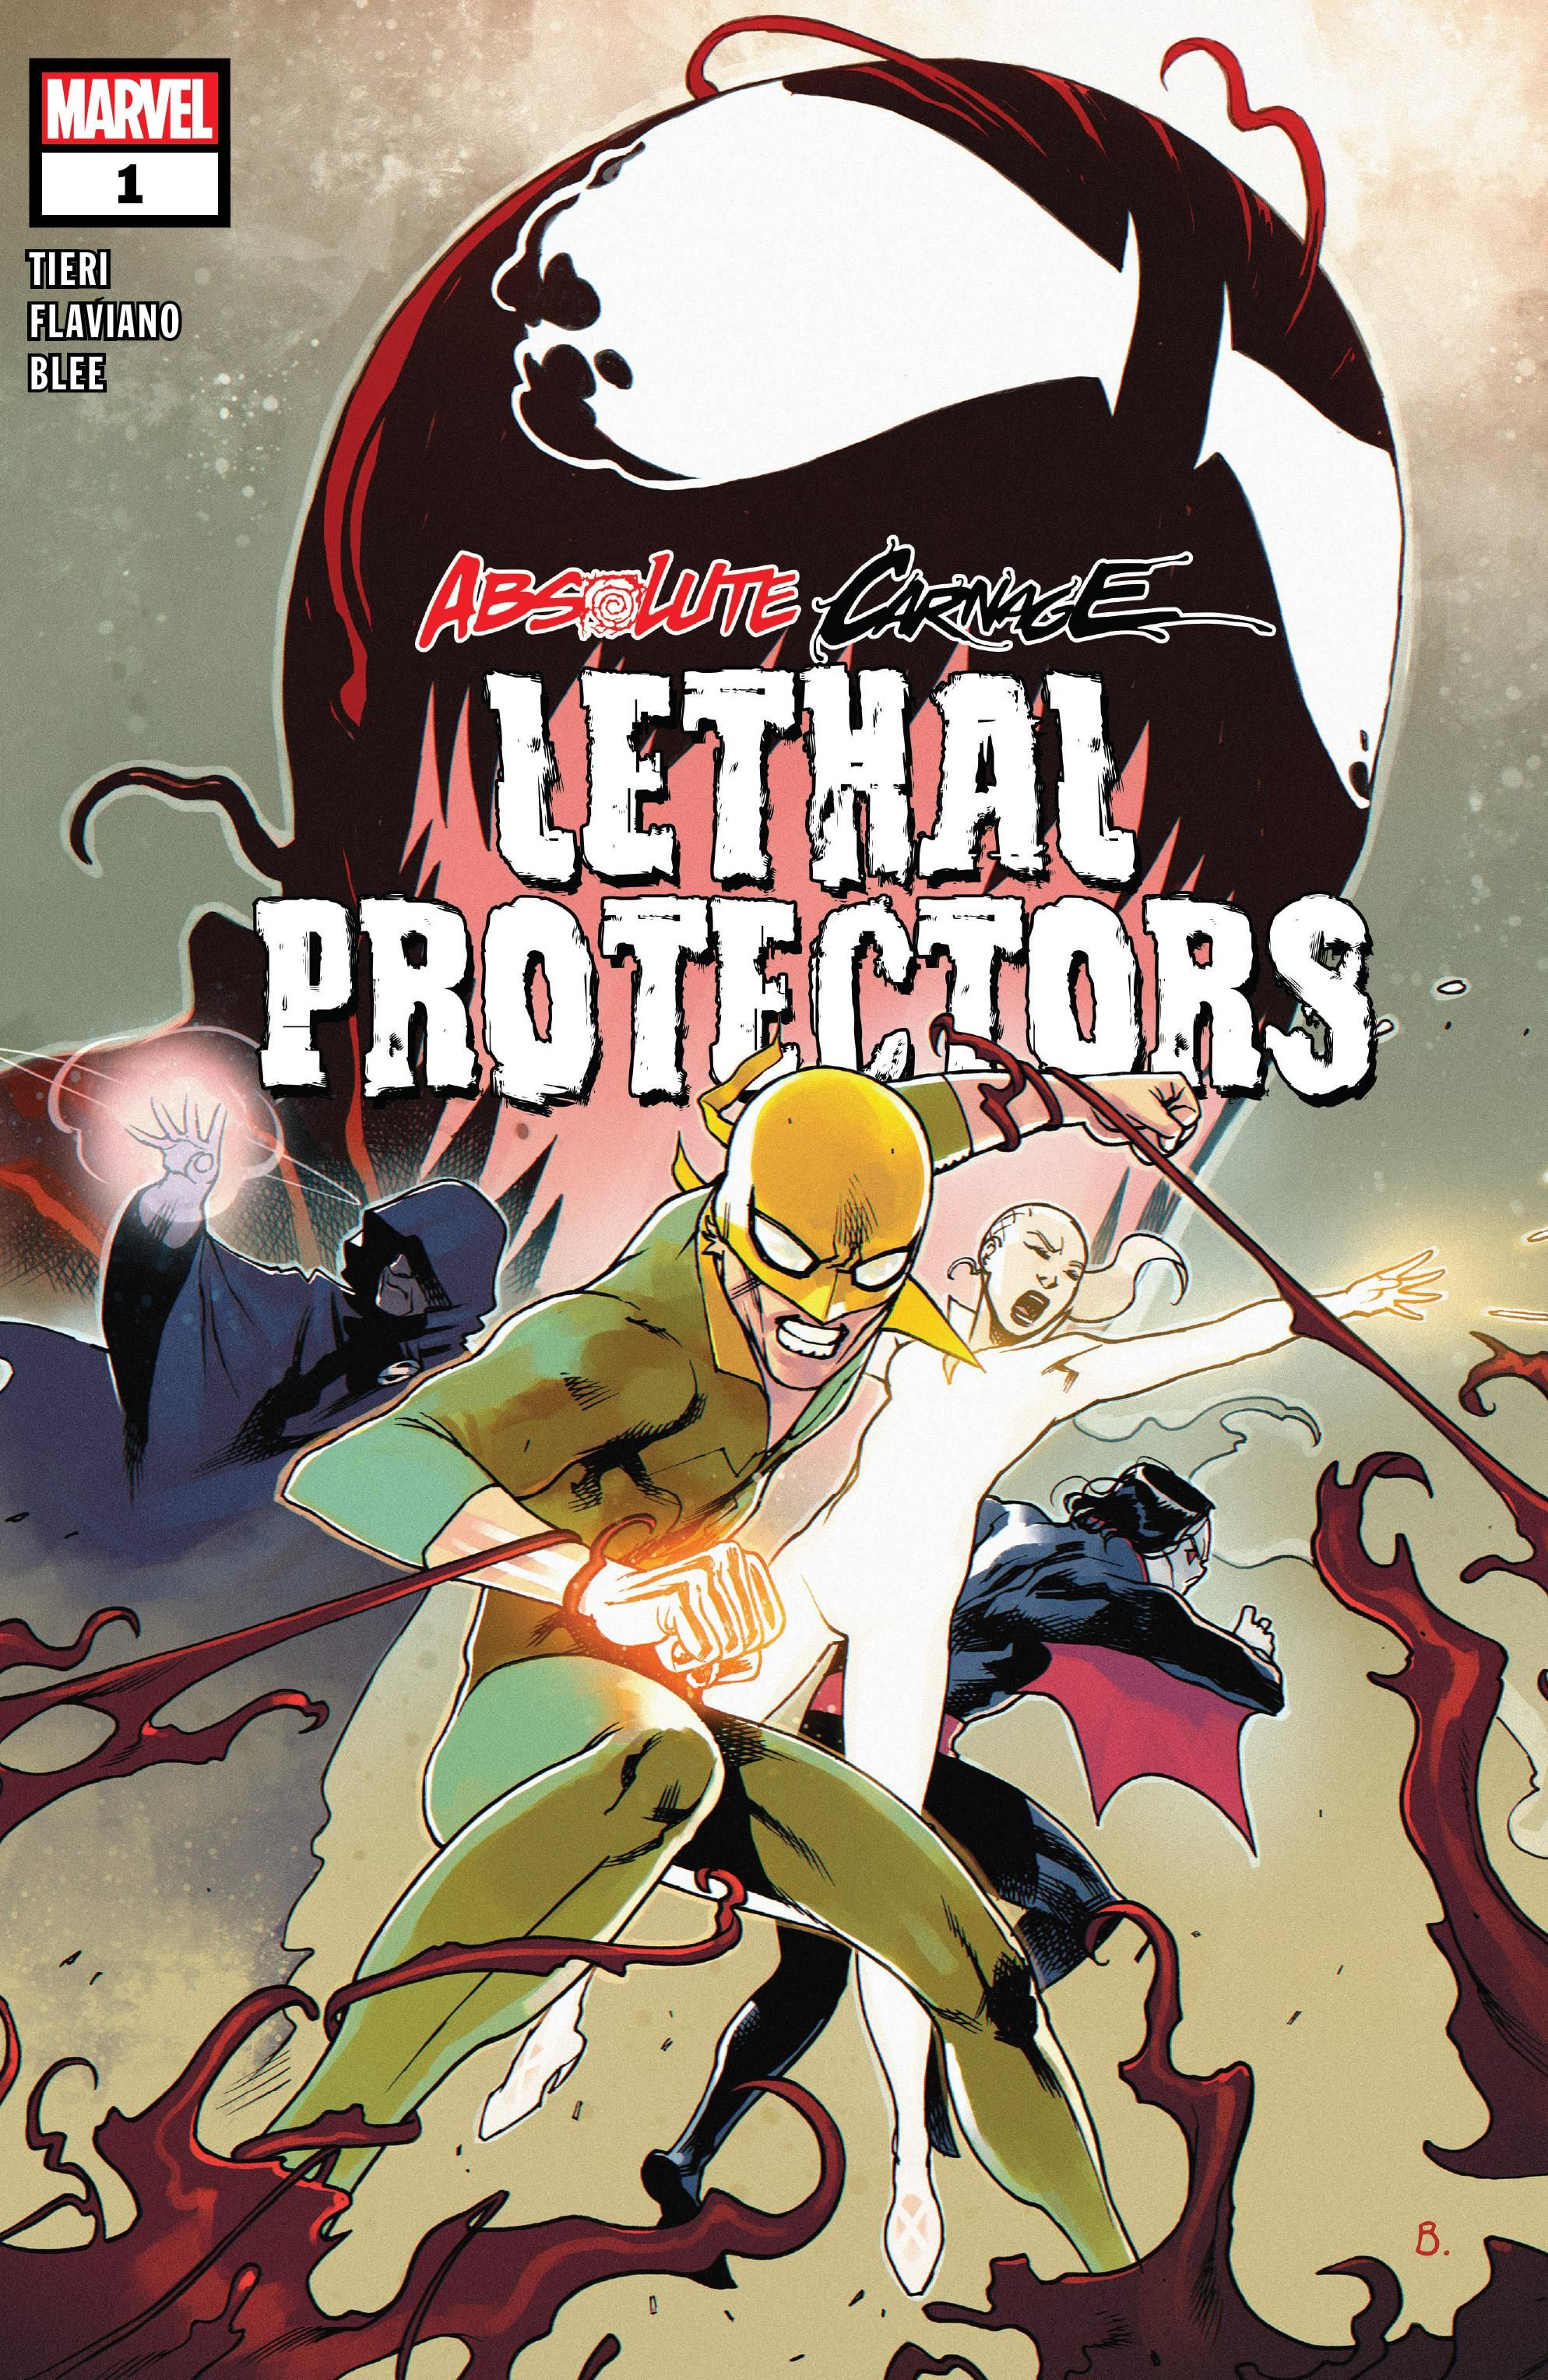 Absolute Carnage: Lethal Protectors Vol 1